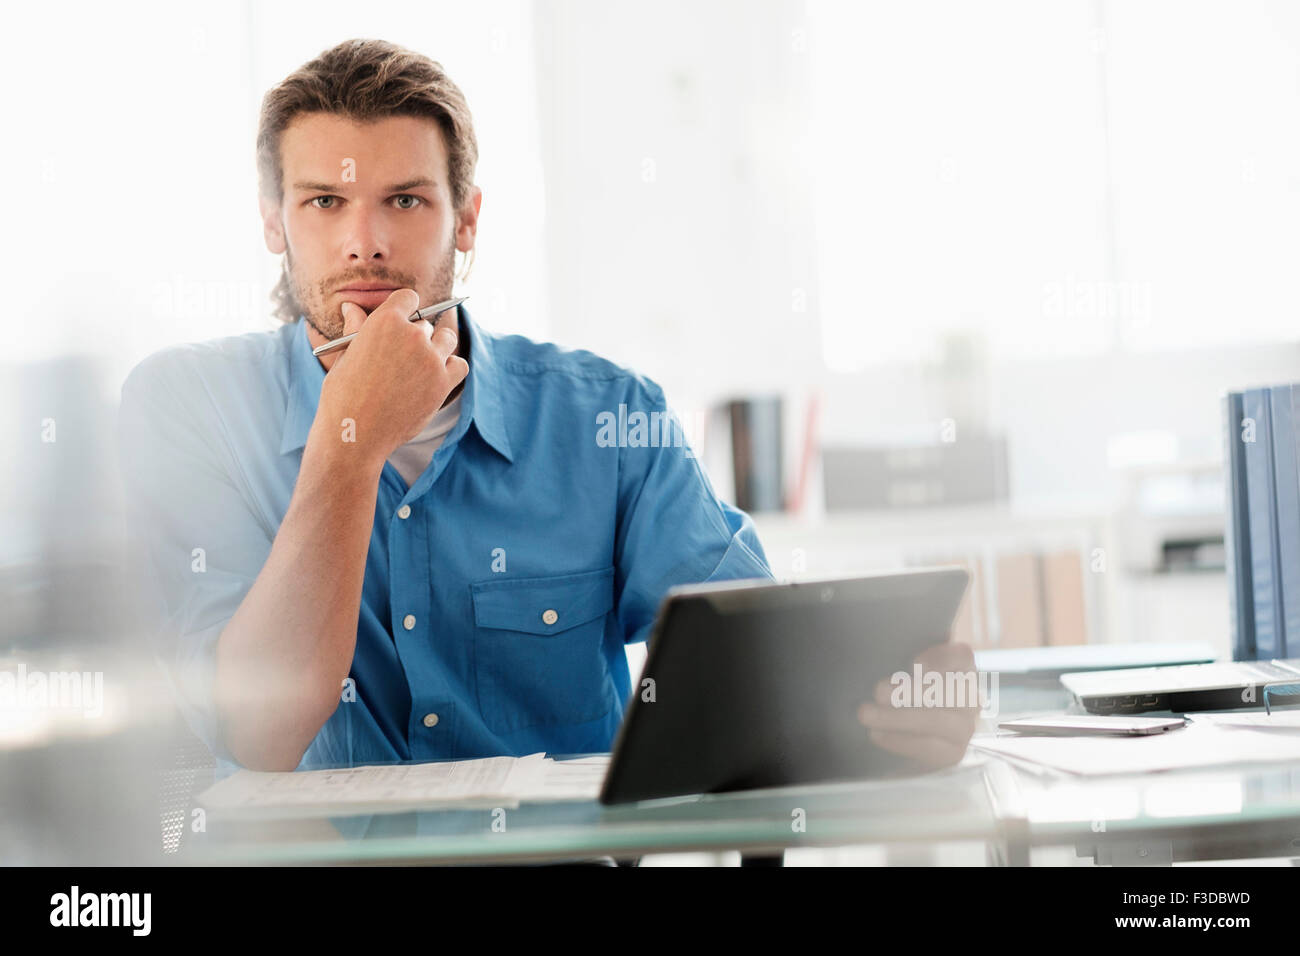 Portrait of mid-adult businessman working in office - Stock Image